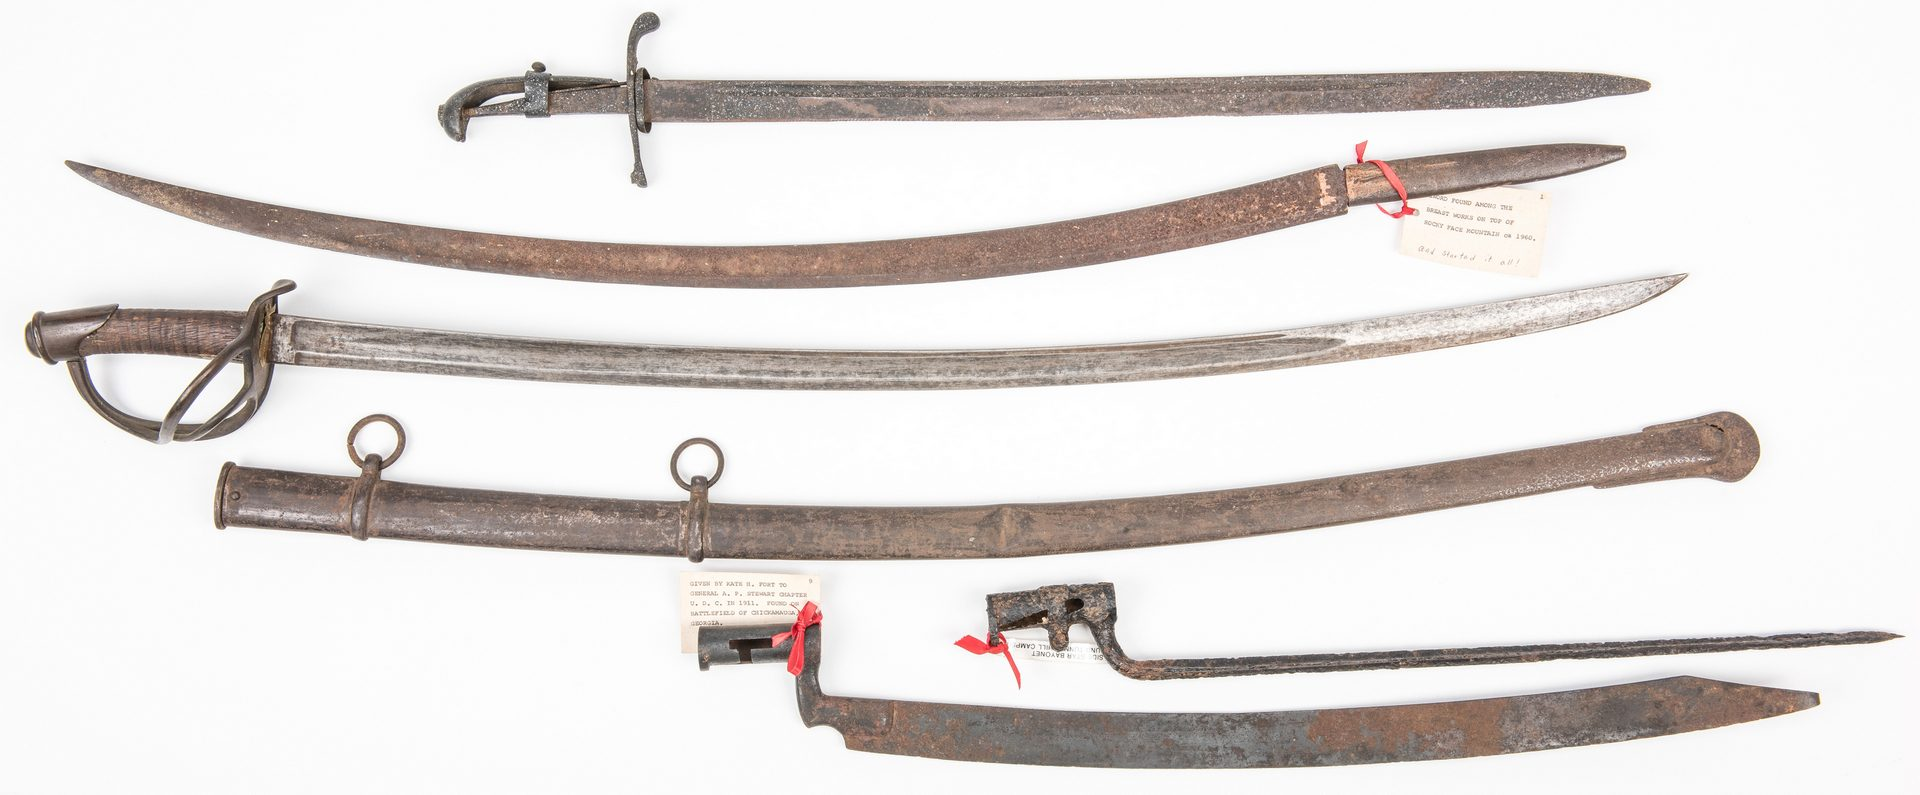 Lot 530: 5 Civil War Edged Weapons, inc. Wristbreaker, Some Relic